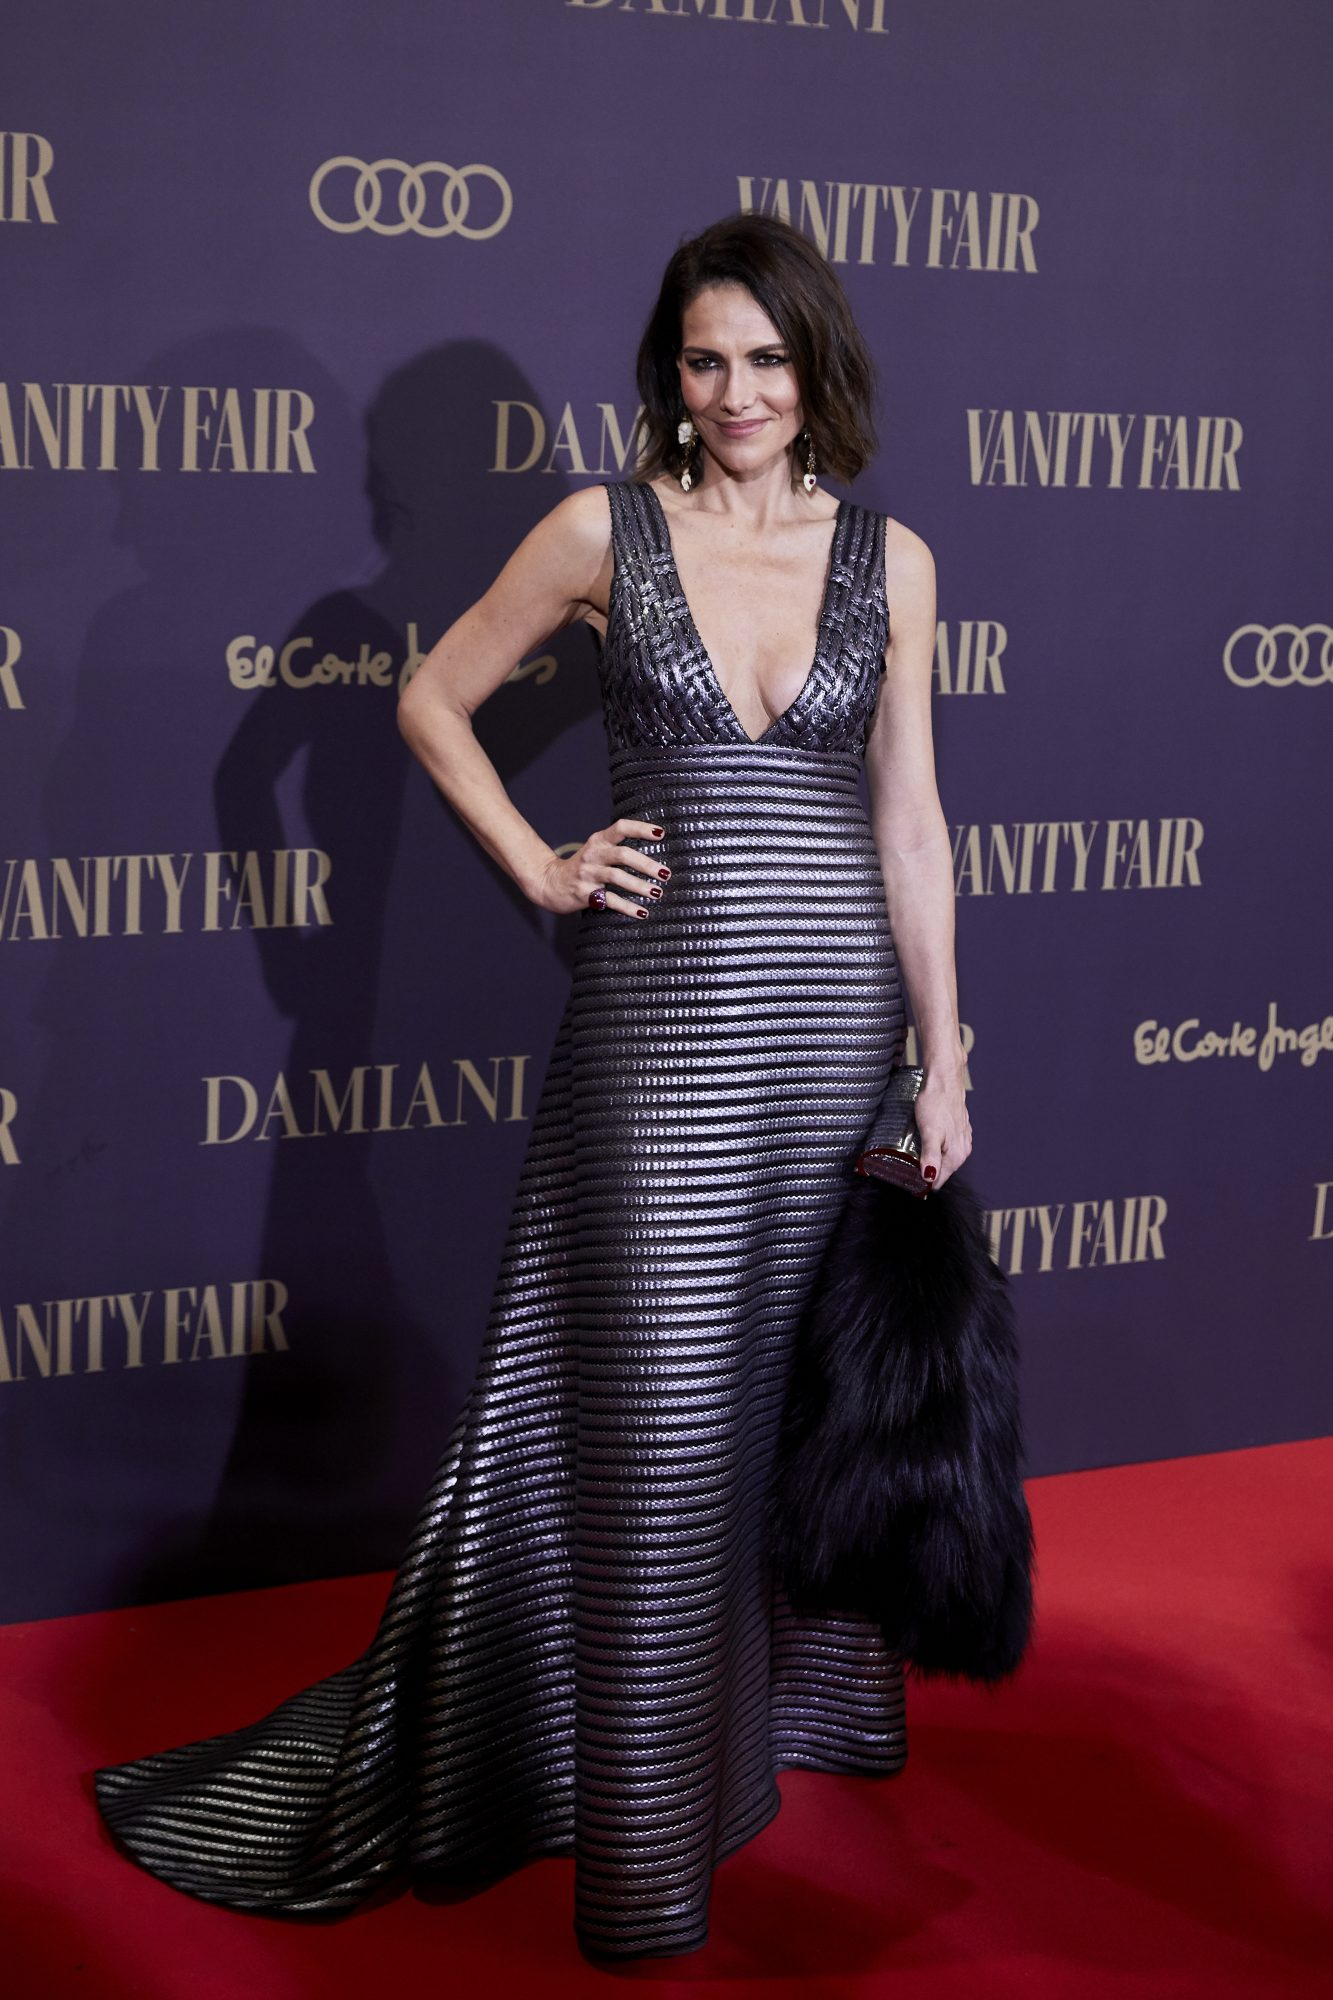 Vanity Fair 'Person of the Year 2019' Awards in Madrid, Spain